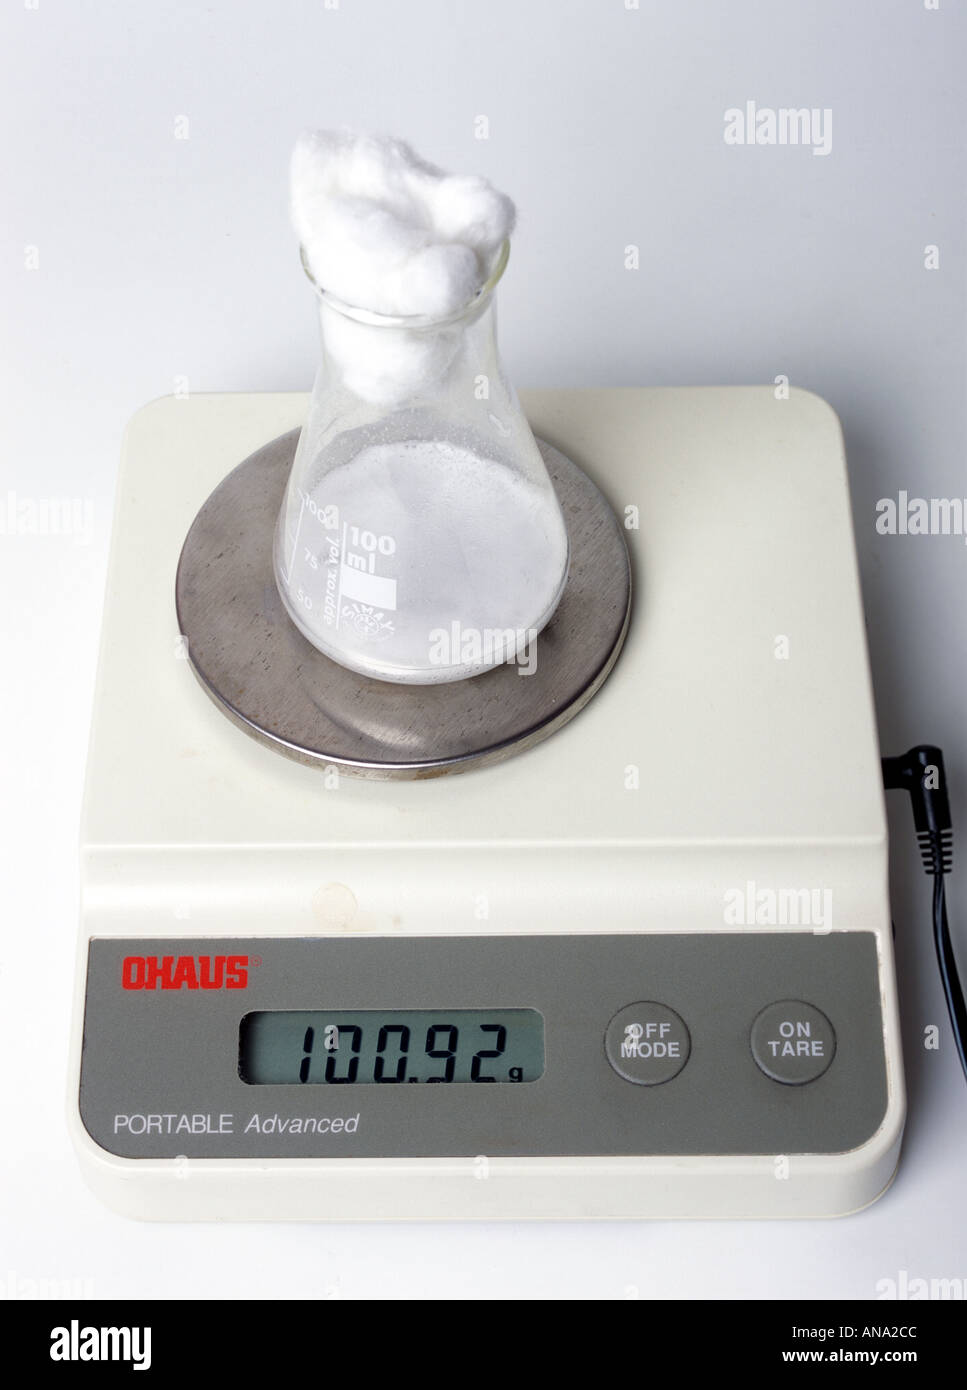 monitoring the change in weight as yeast generates carbon dioxide - Stock Image